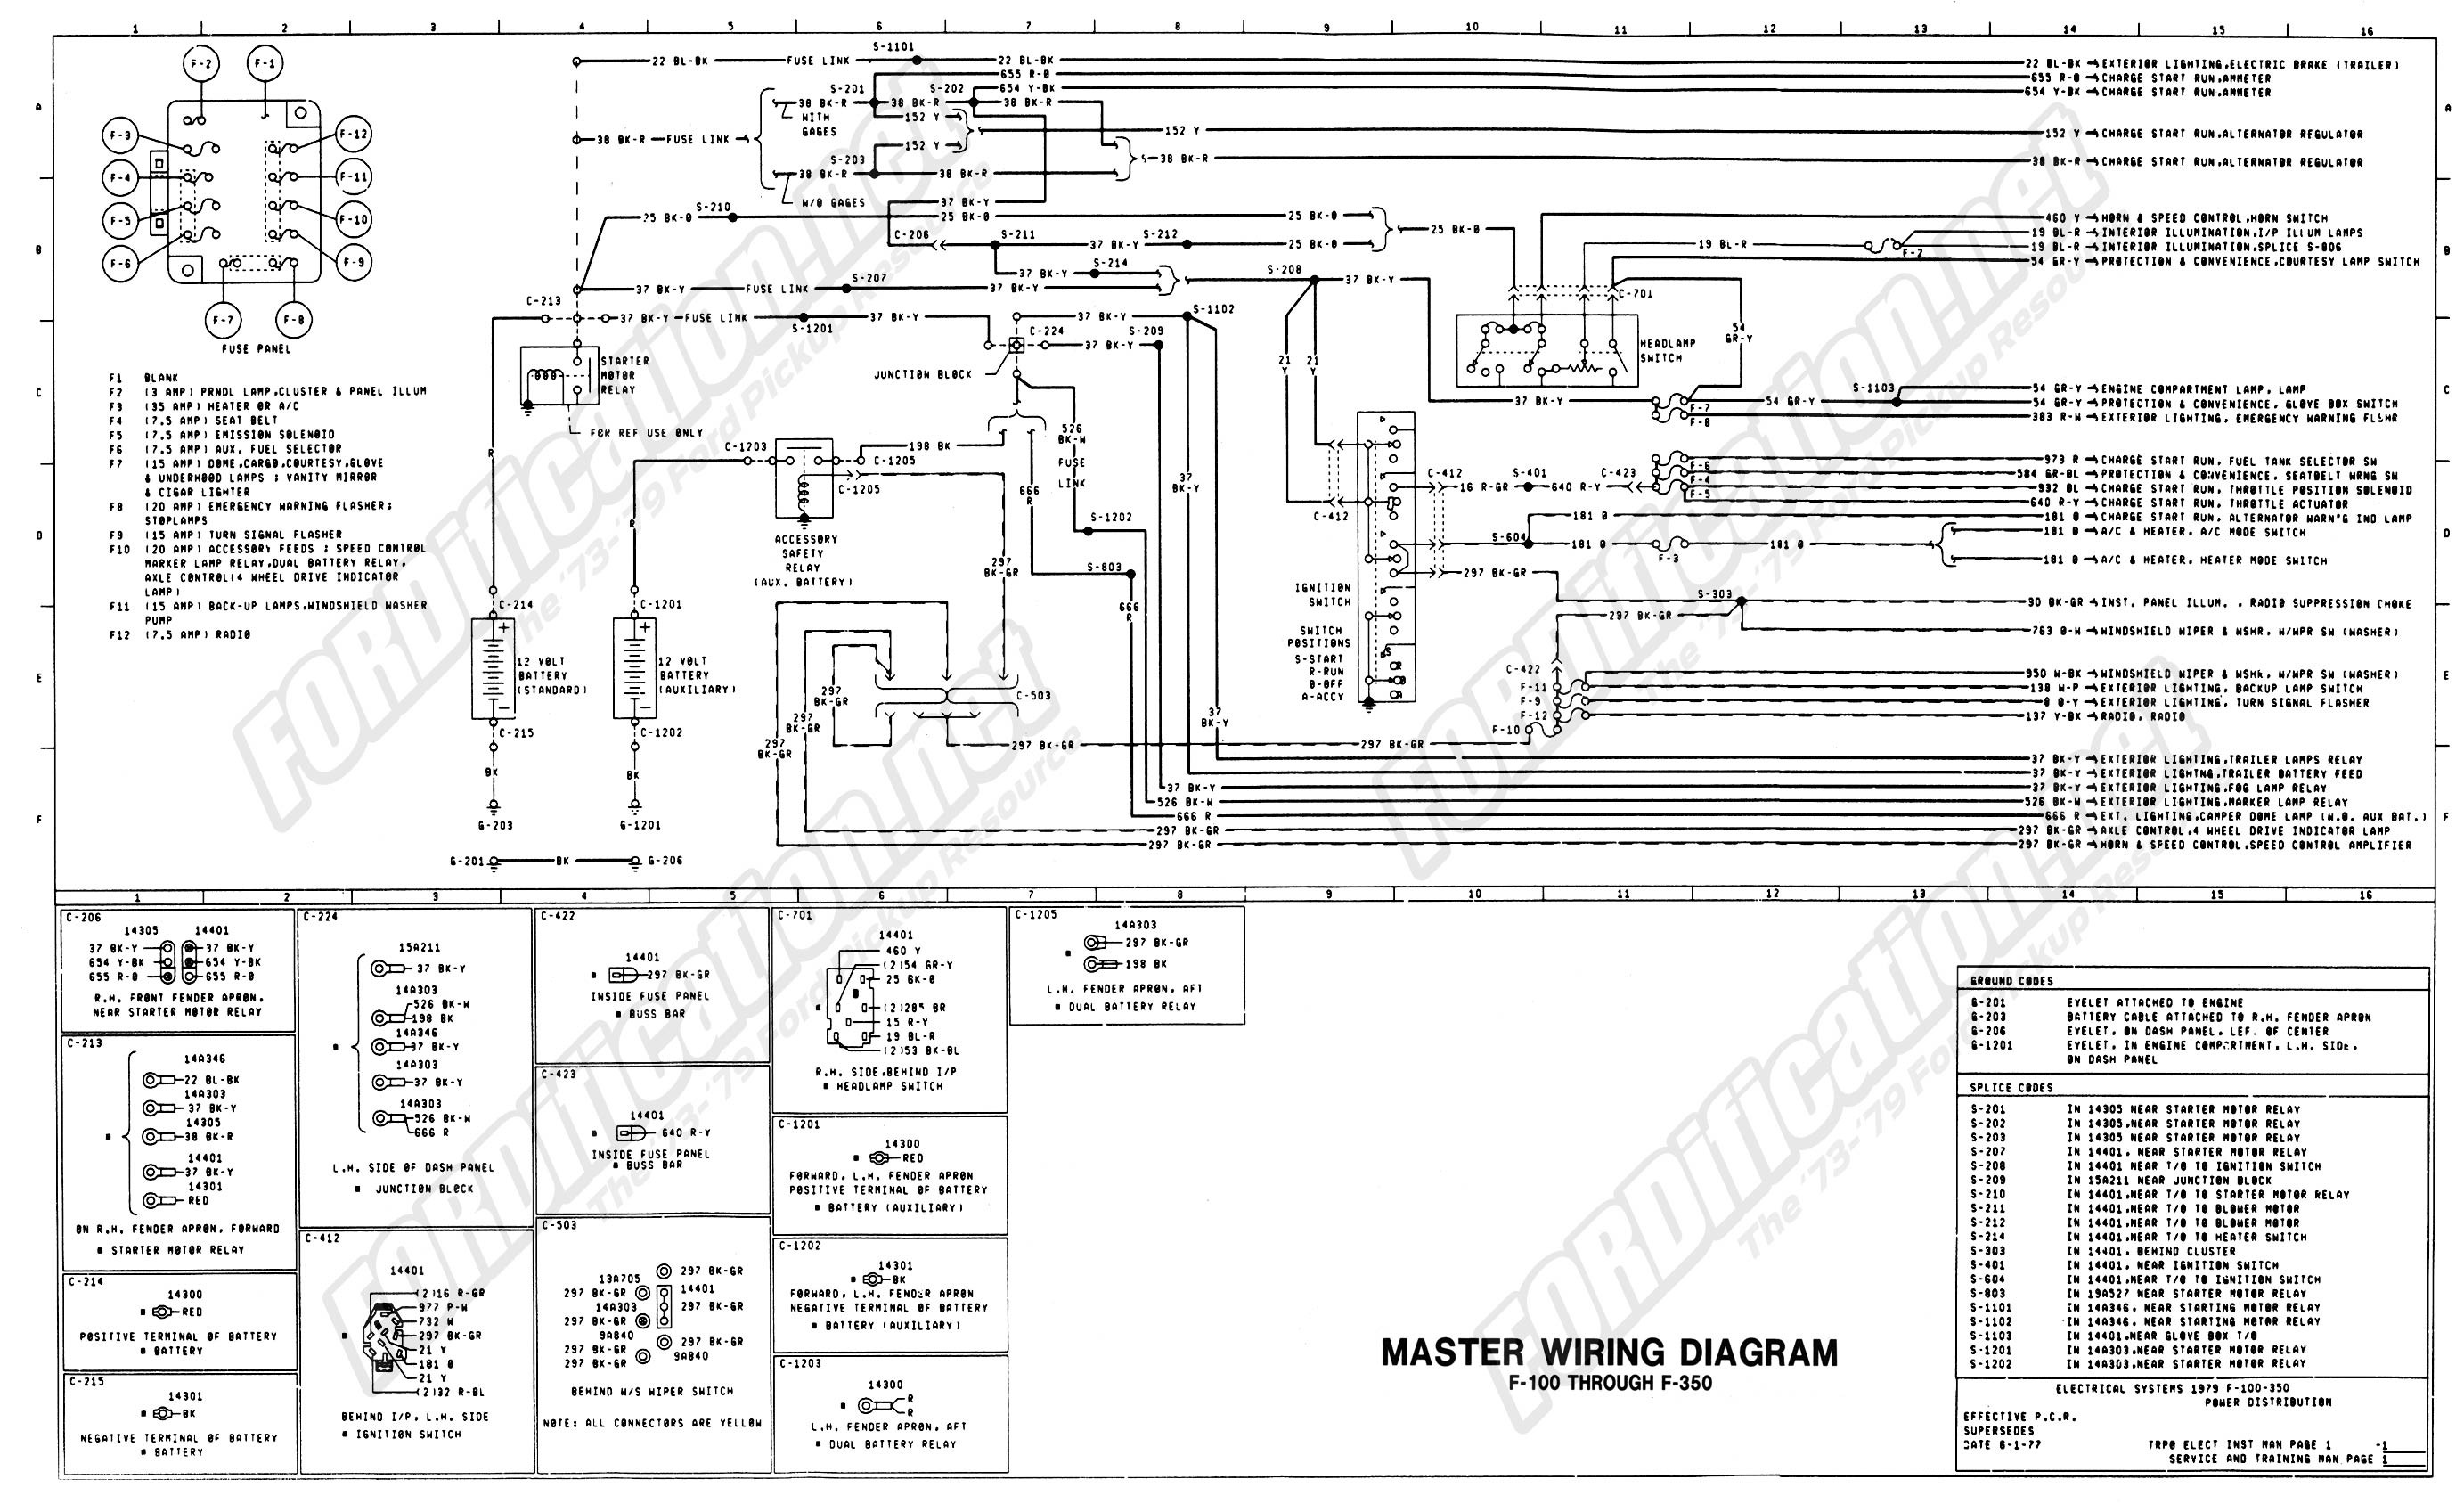 northstar camper wiring diagram explore wiring diagram on the net • northstar campers wiring diagrams wiring library magneto wiring diagram mercruiser smartcraft wiring diagram